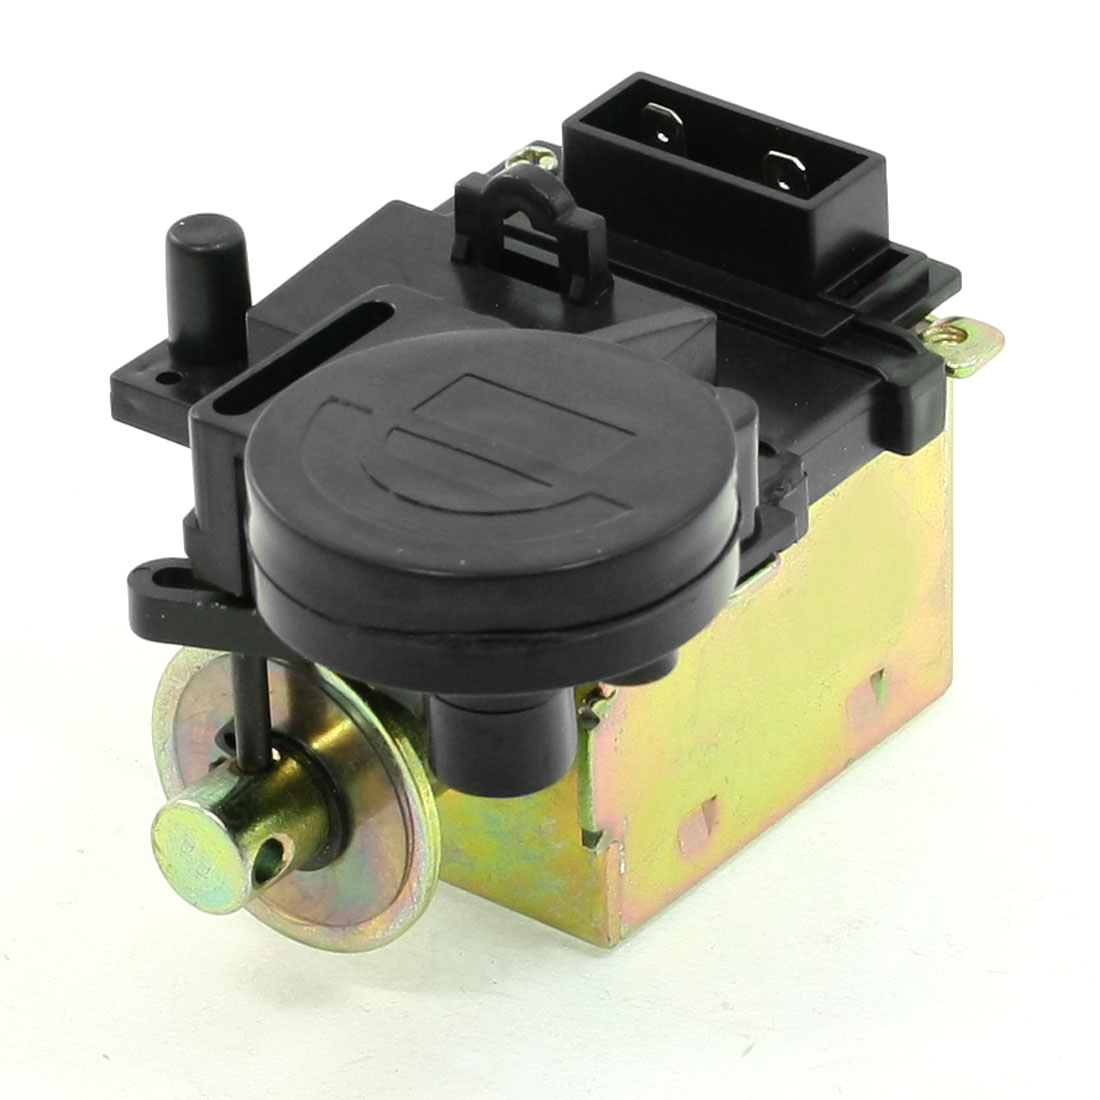 200V 50N Water Drain DC Electromagnetic Solenoid Valve for Jinsong Washer